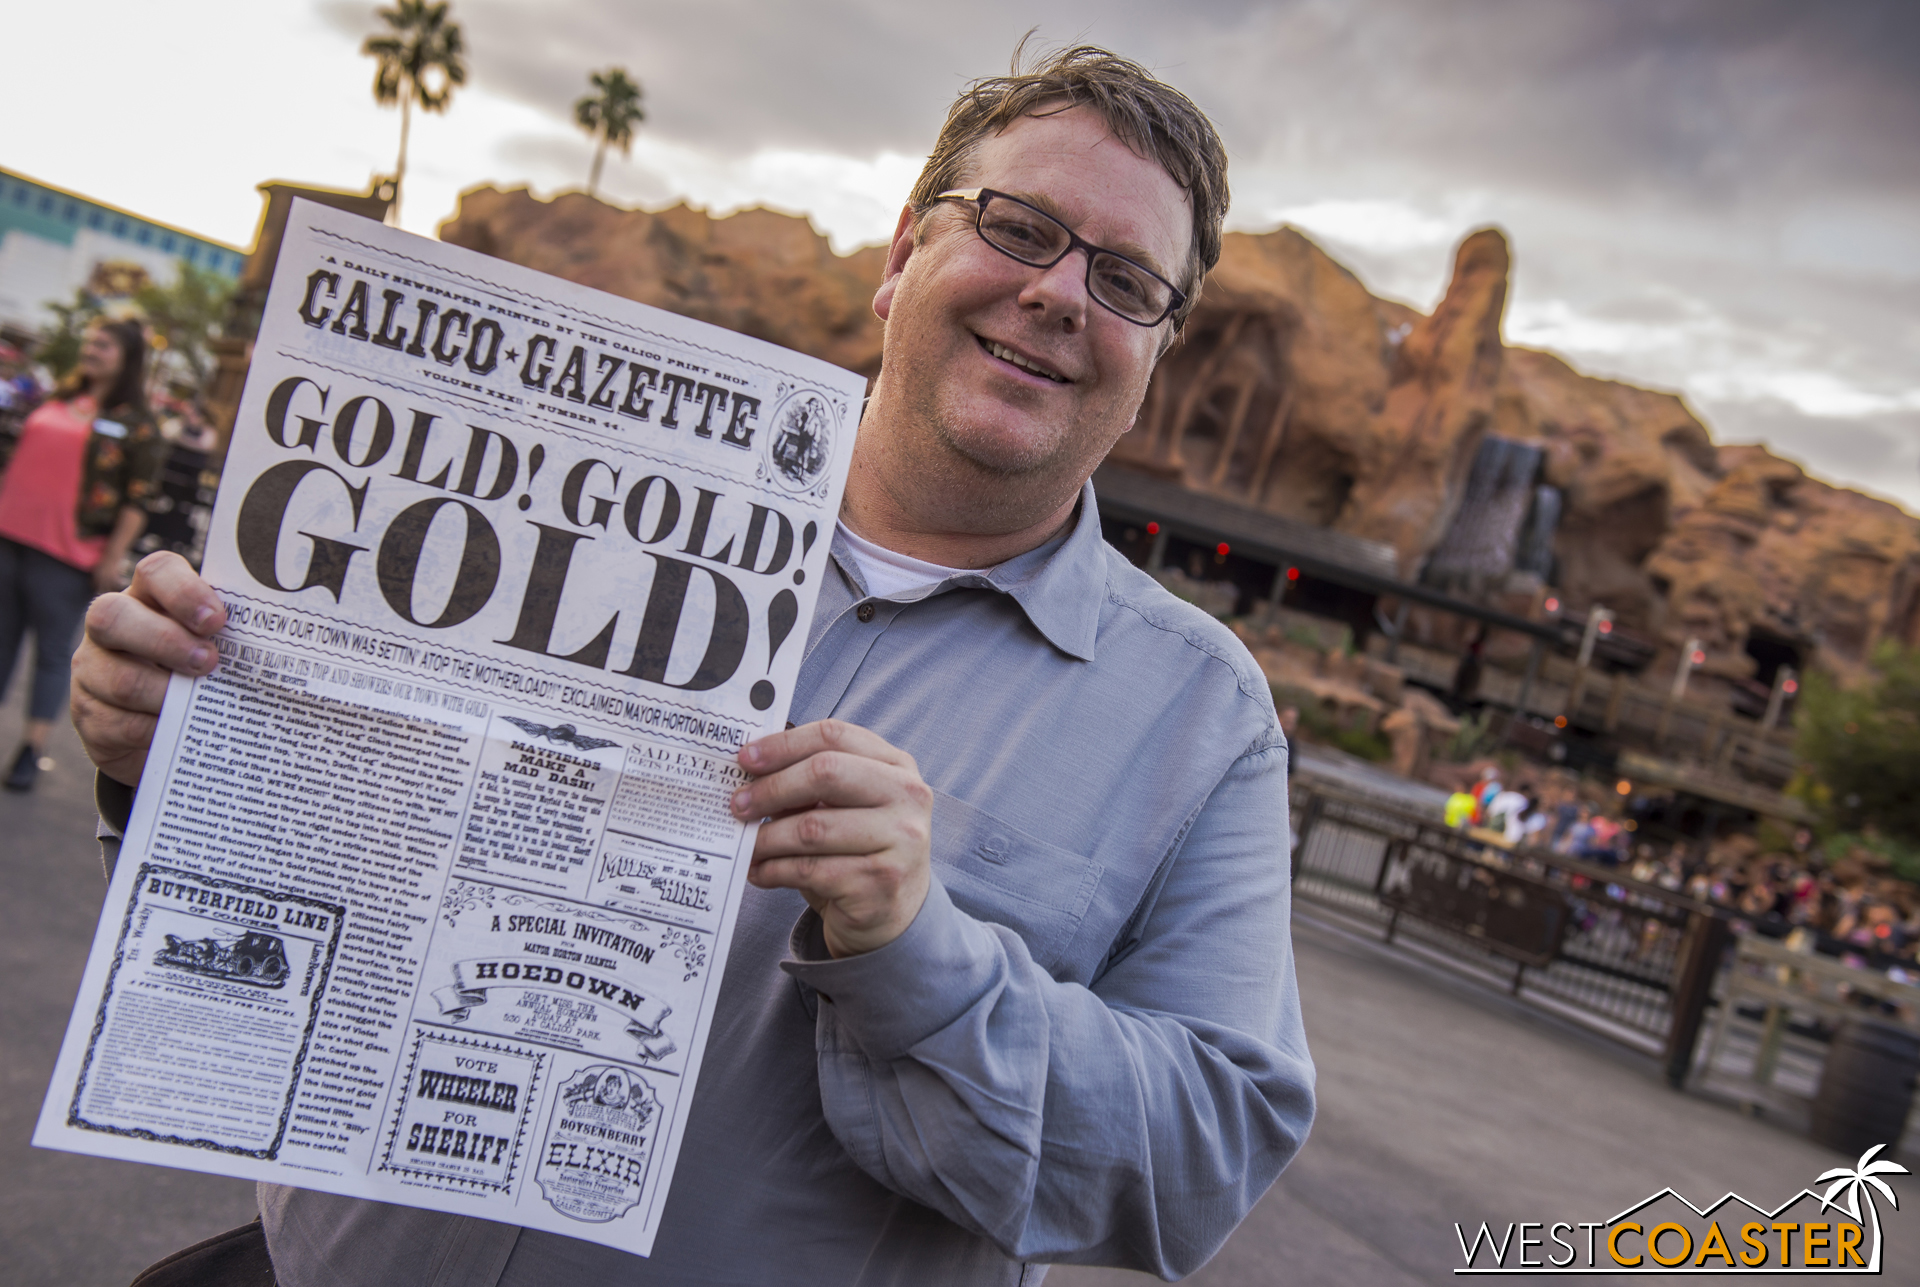 Knott's Vice President of Entertainment, Ken Parks, and everyone involved with Ghost Town Alive! have certainly struck gold with this amazing event. Thank you to everyone, and looking forward to what next year brings!